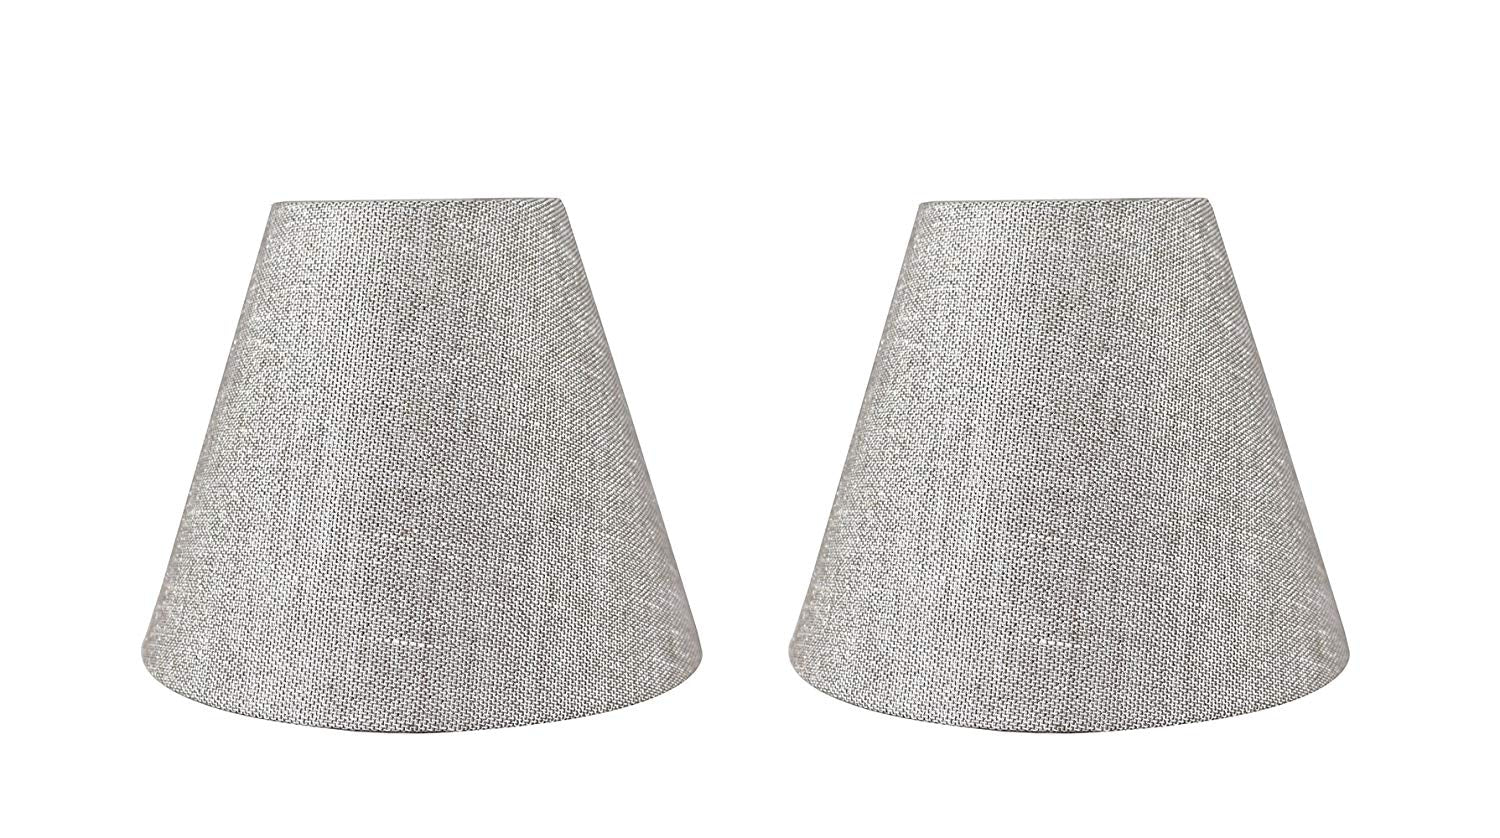 Urbanest hardback metallic fabric chandelier lamp shade 3 inch by 6 urbanest hardback metallic fabric chandelier lamp shade 3 inch by 6 inch by aloadofball